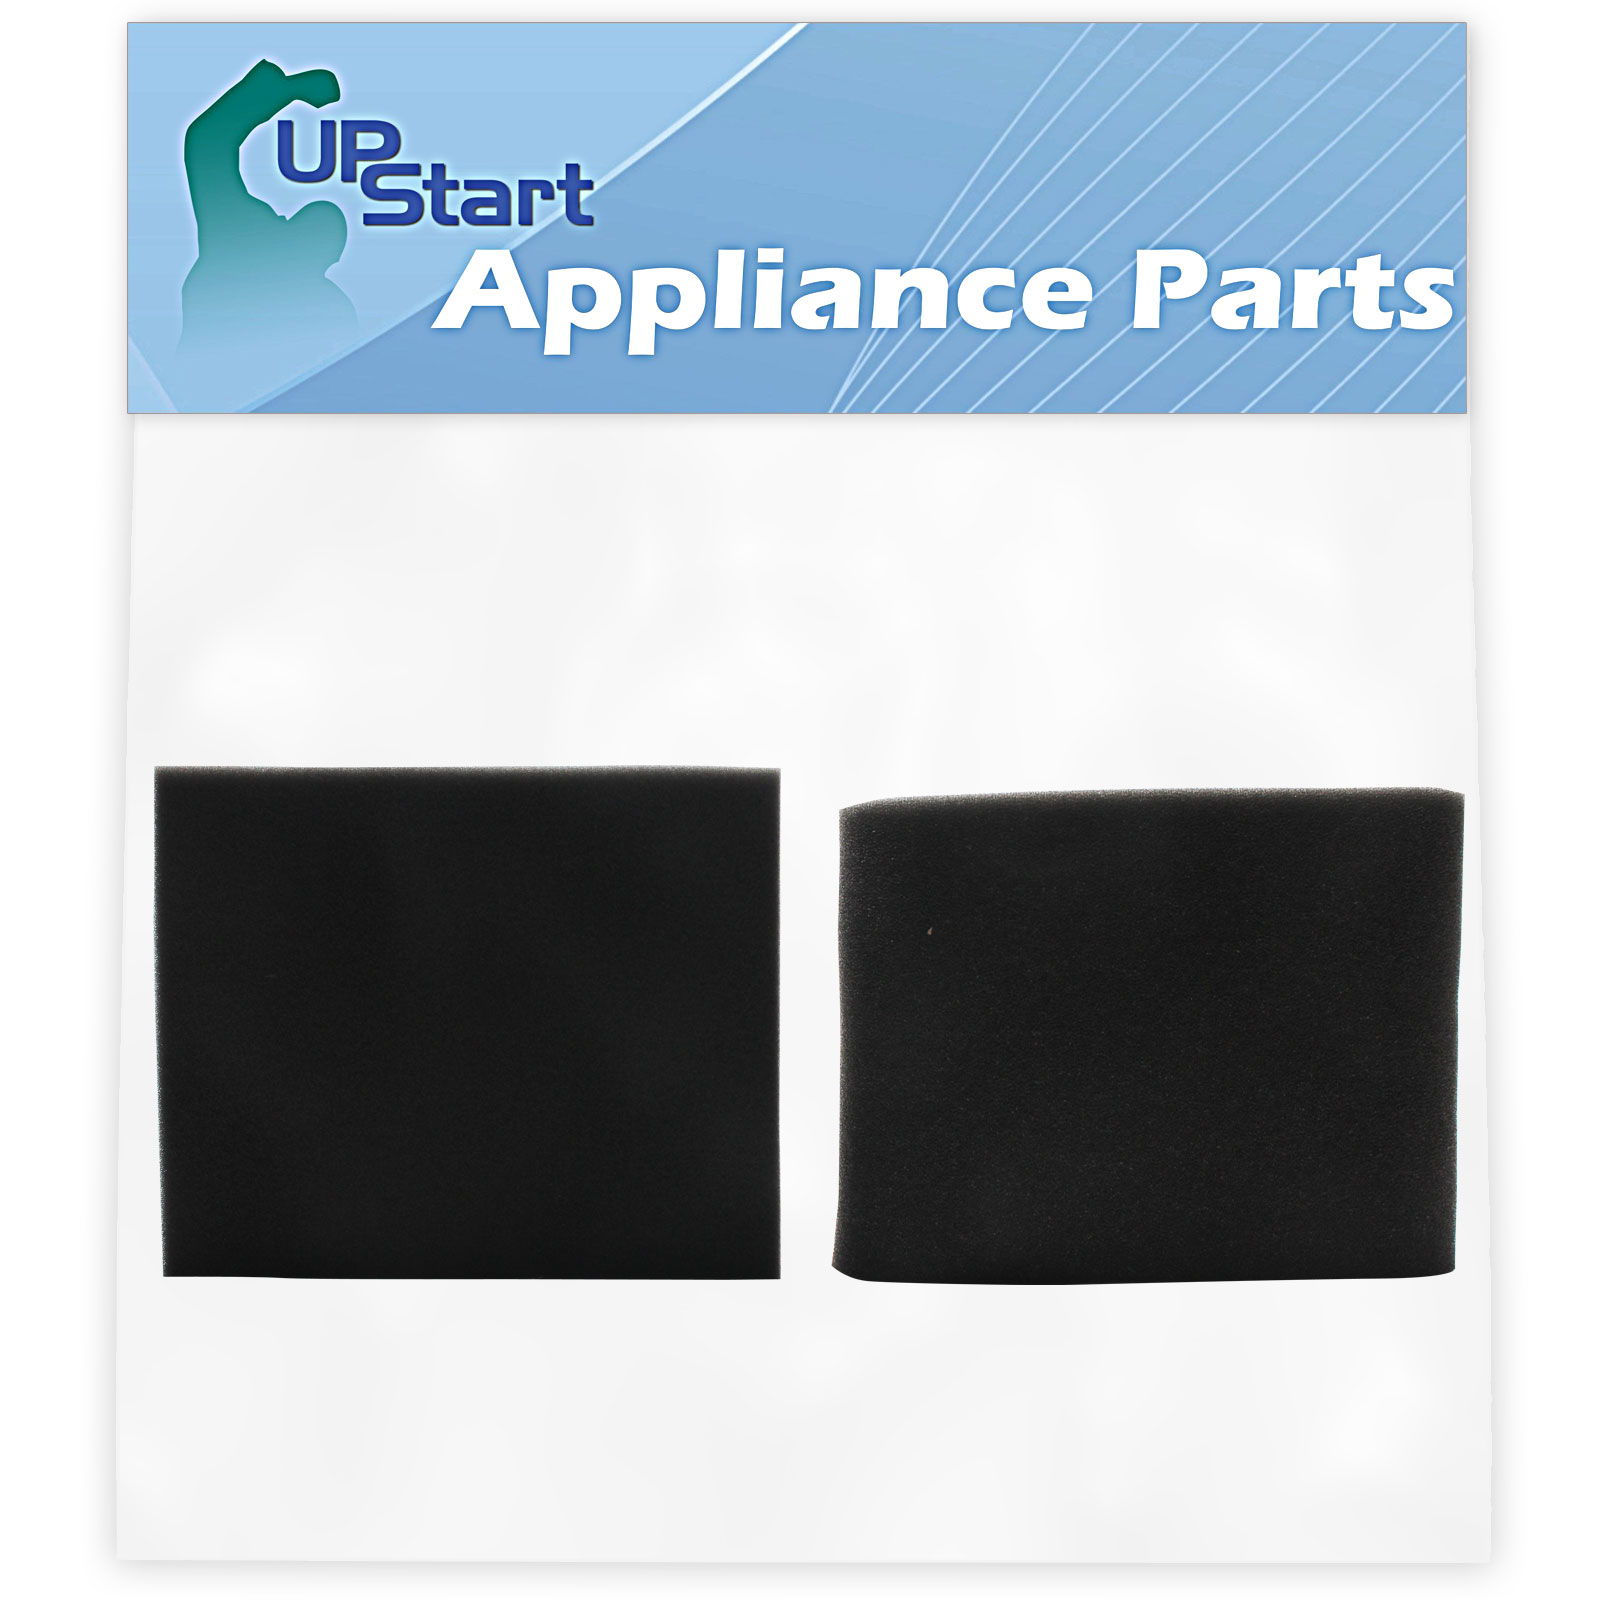 Filter Upper Tank /& Pre-Motor Filter for Bissell 6591 22C1 35762 w// Micro Kit